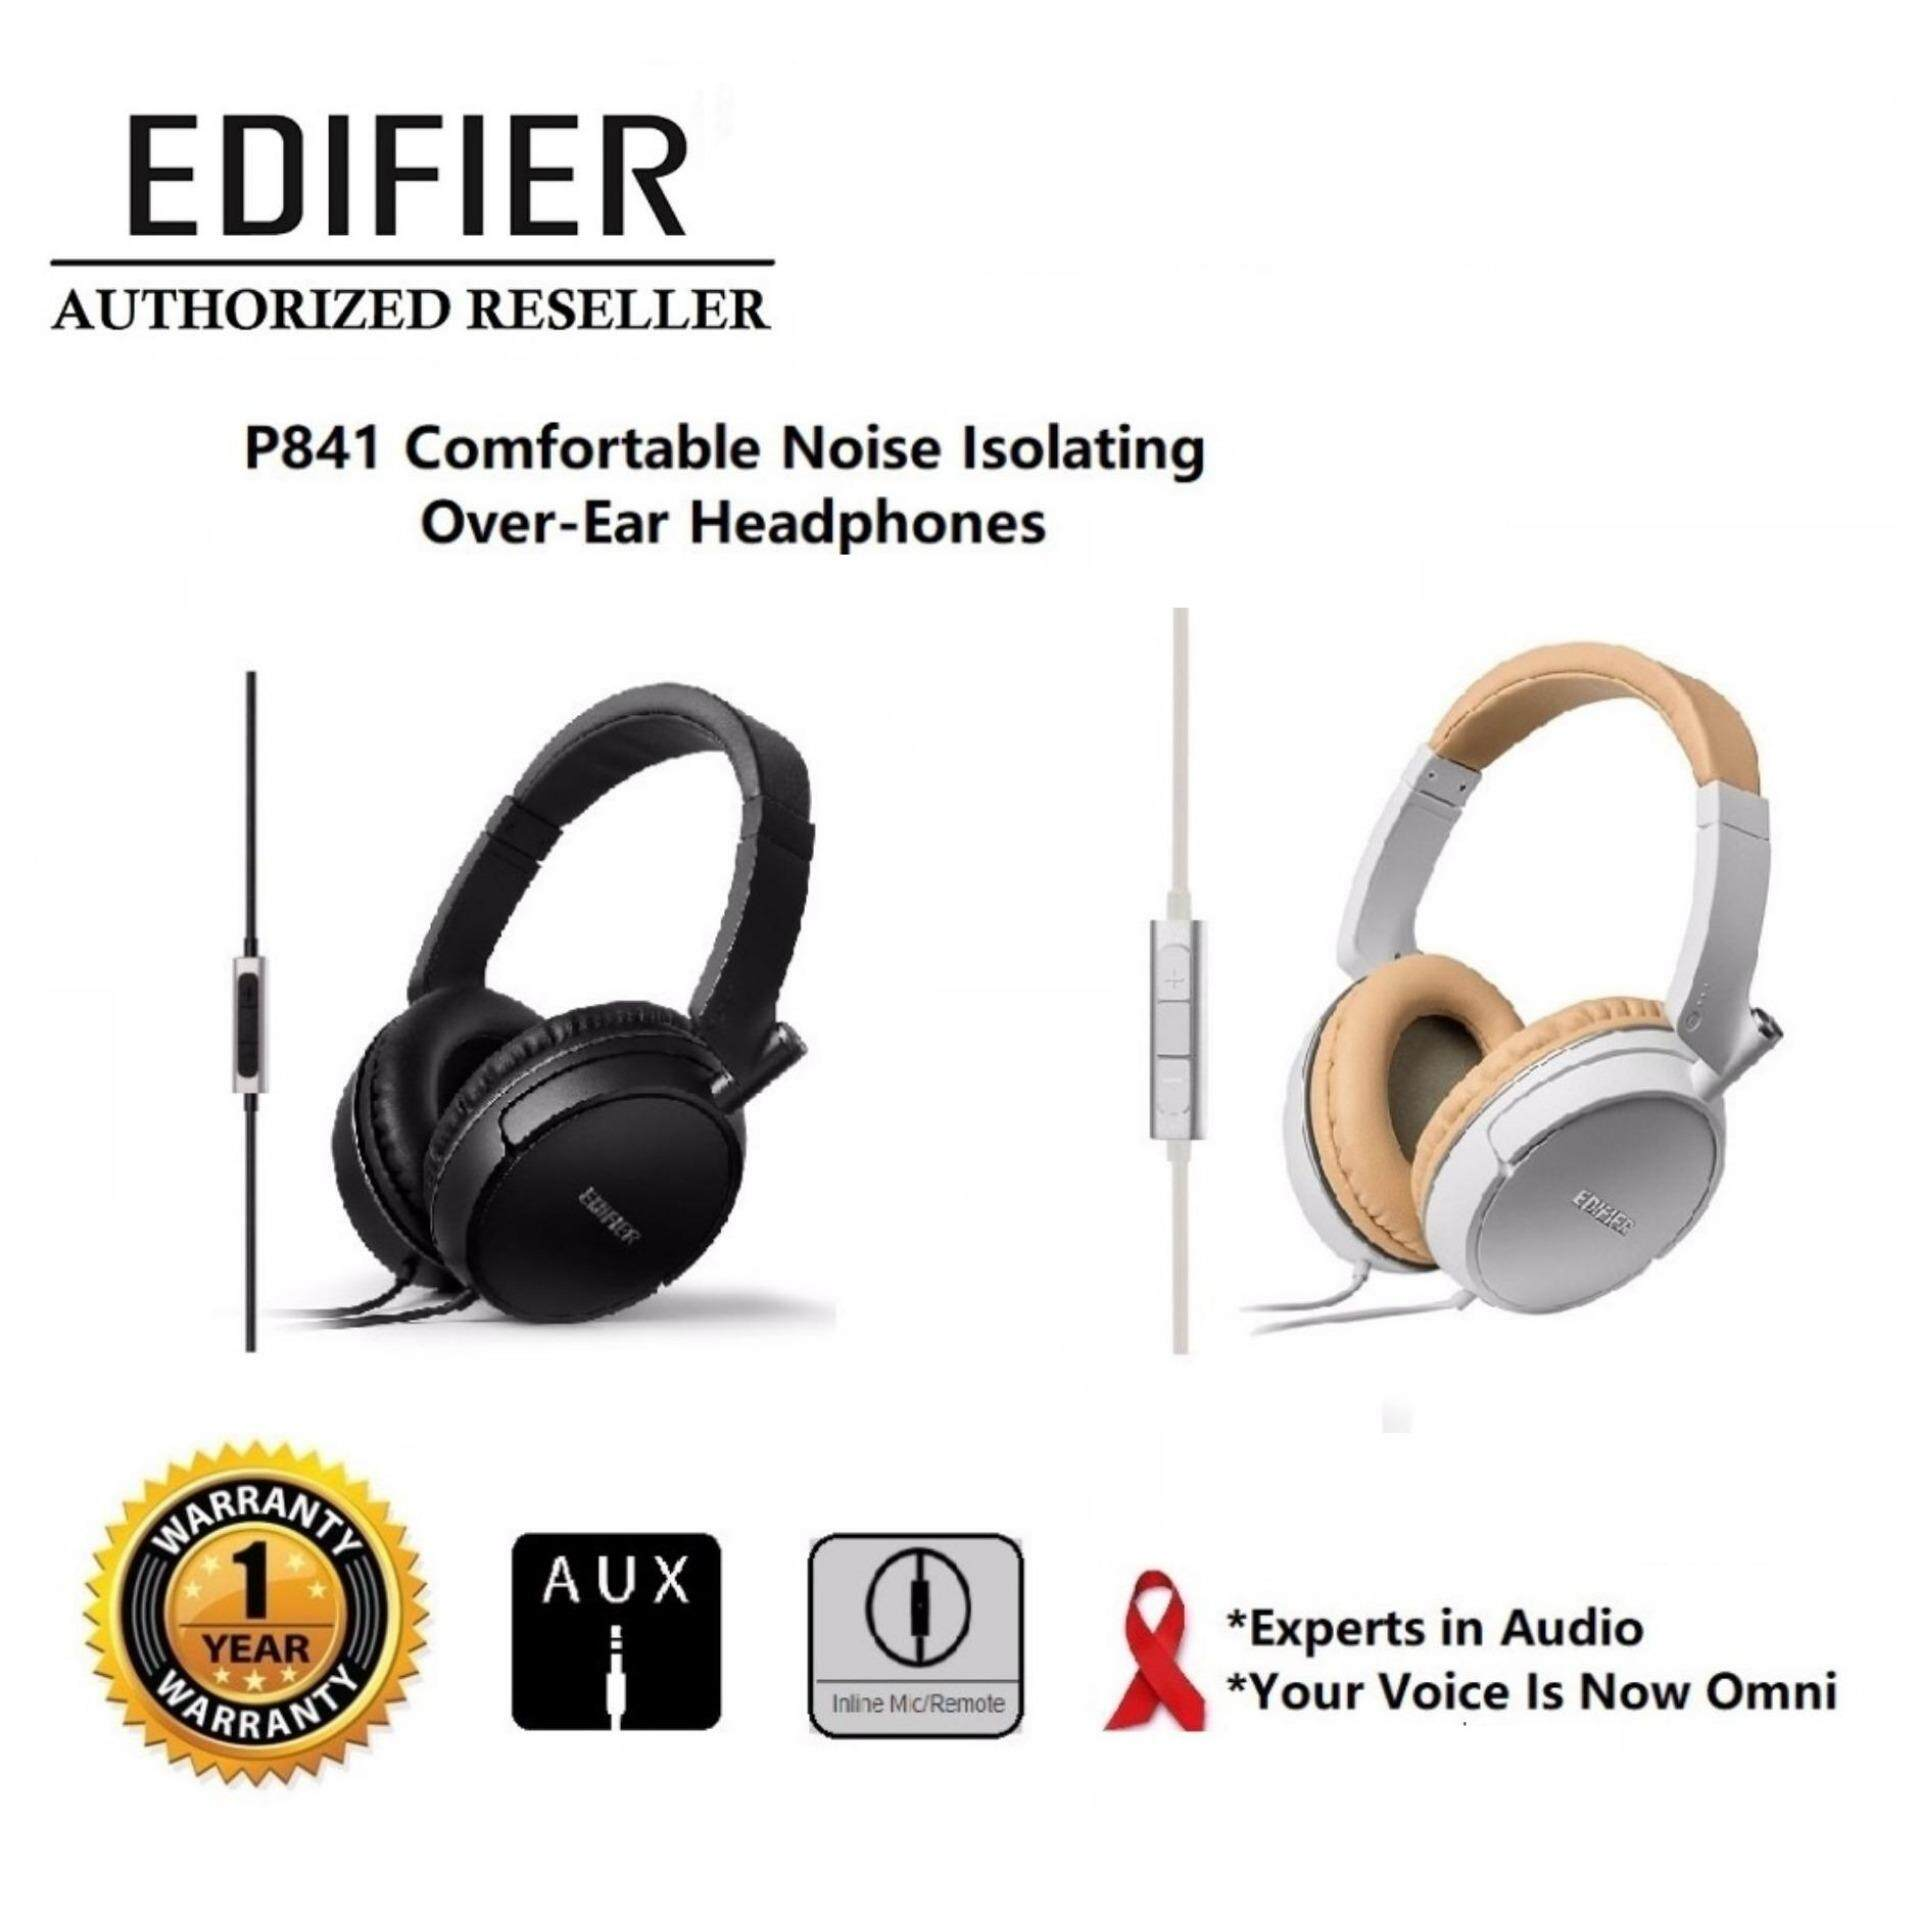 GENUINE EDIFIER P841 HI-FI SOUND WITH GREAT BASS HEADPHONES